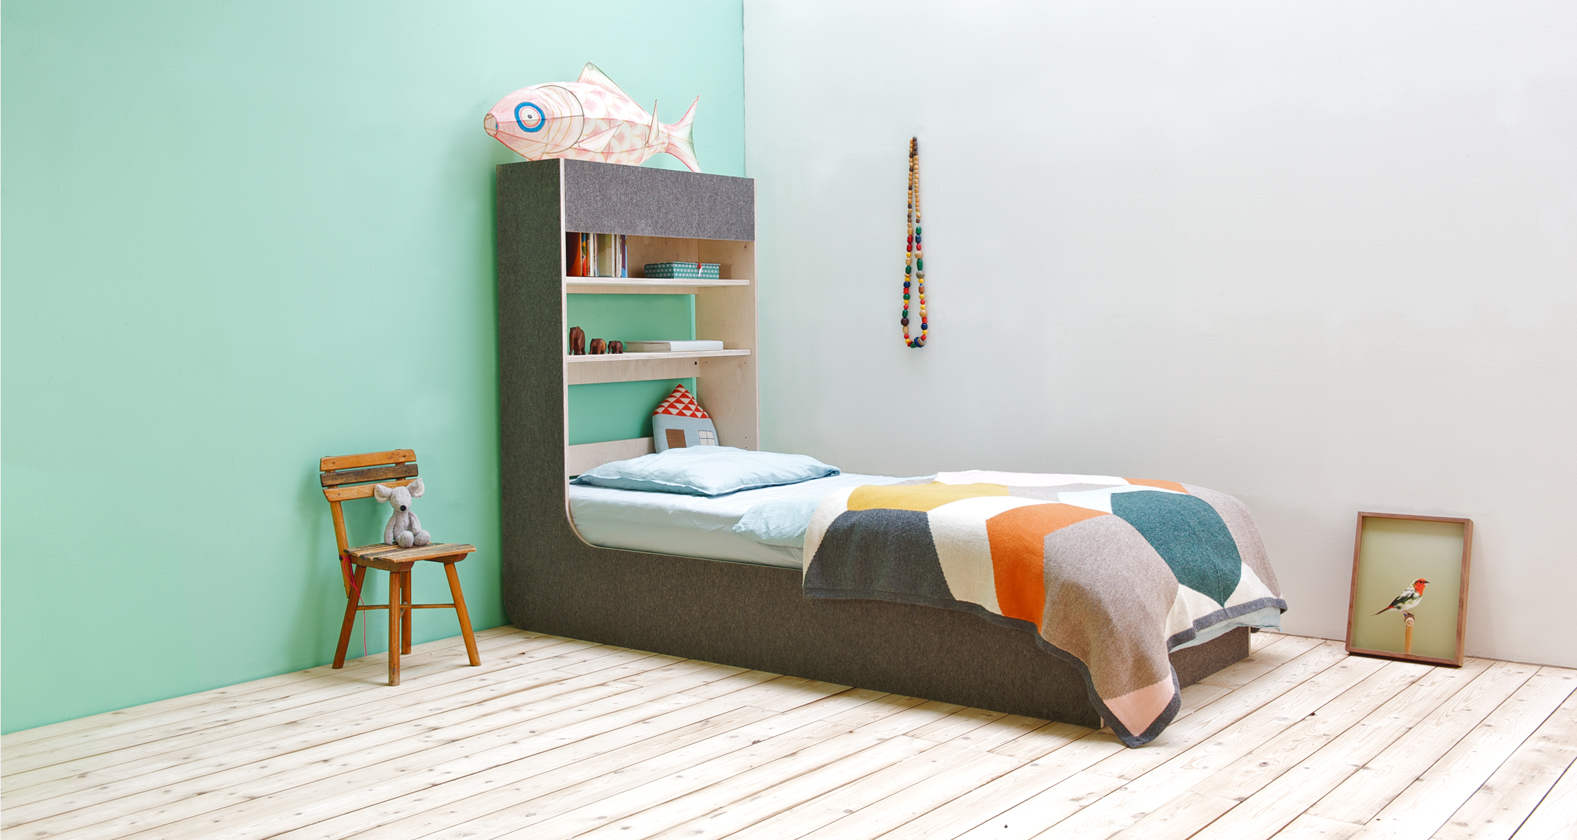 Blog d co solovely d coration chambre d 39 enfant for But chambre d enfant